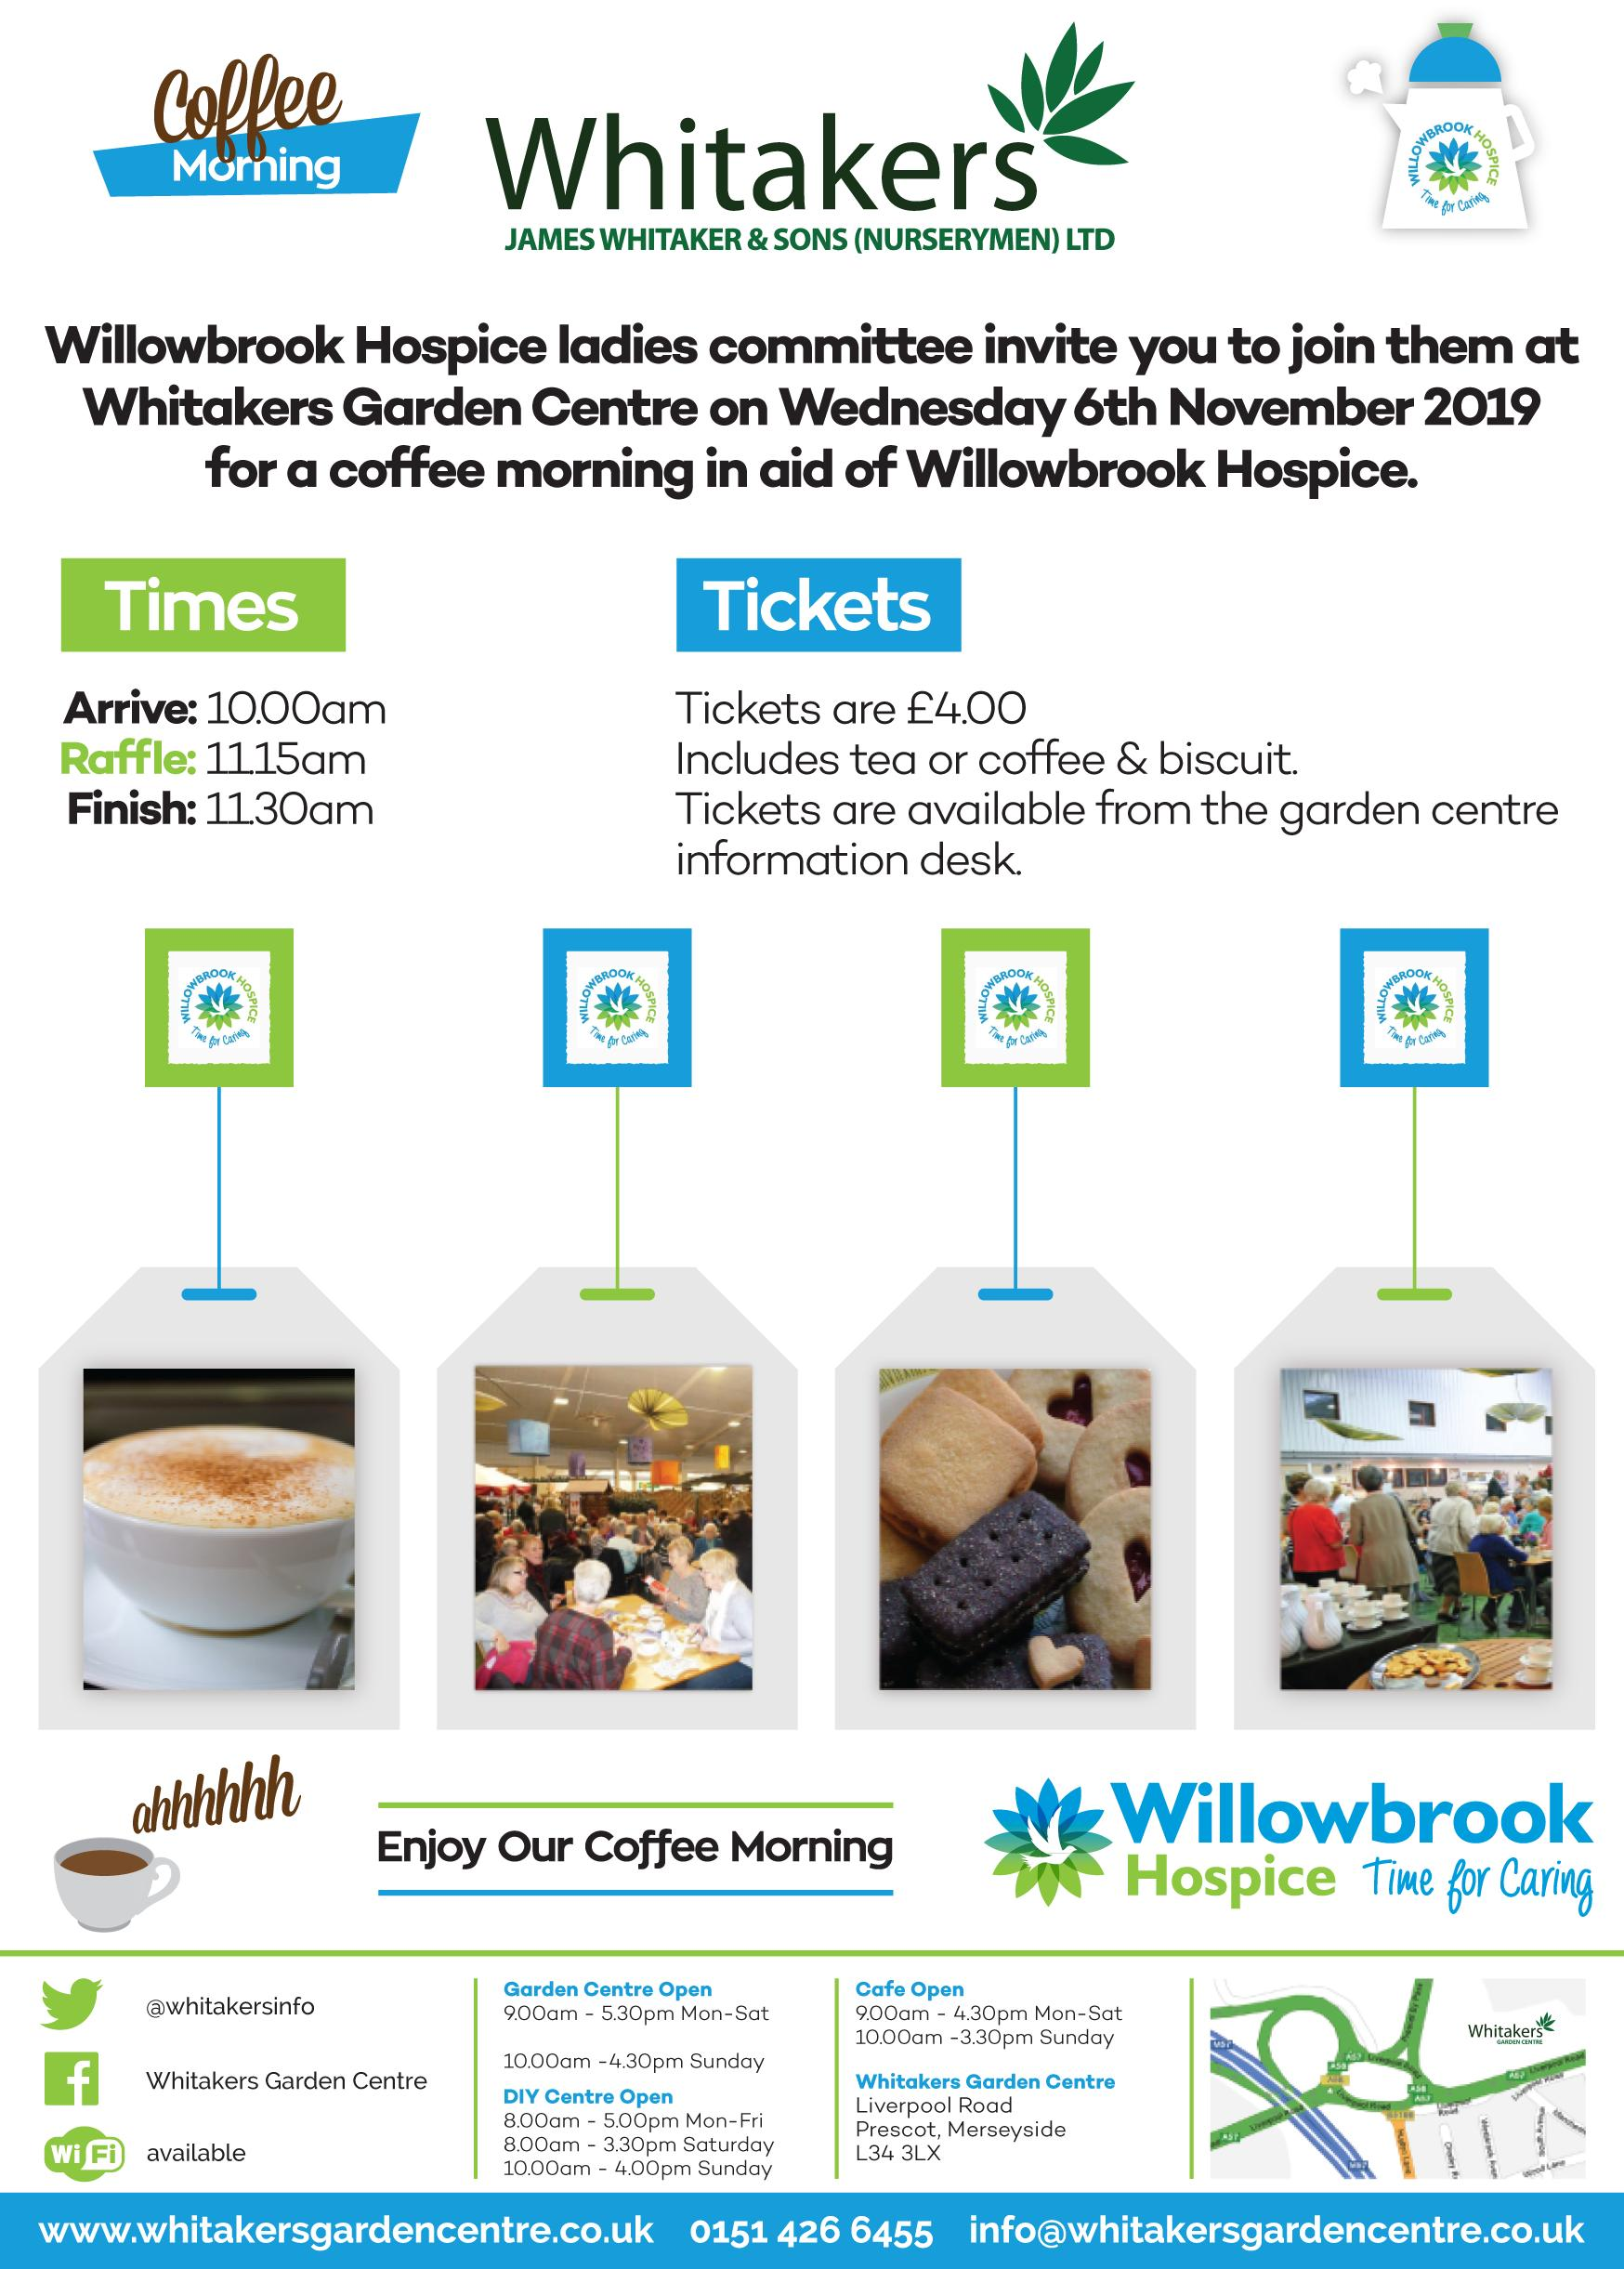 Coffee Morning in aid of Willowbrook Hospice